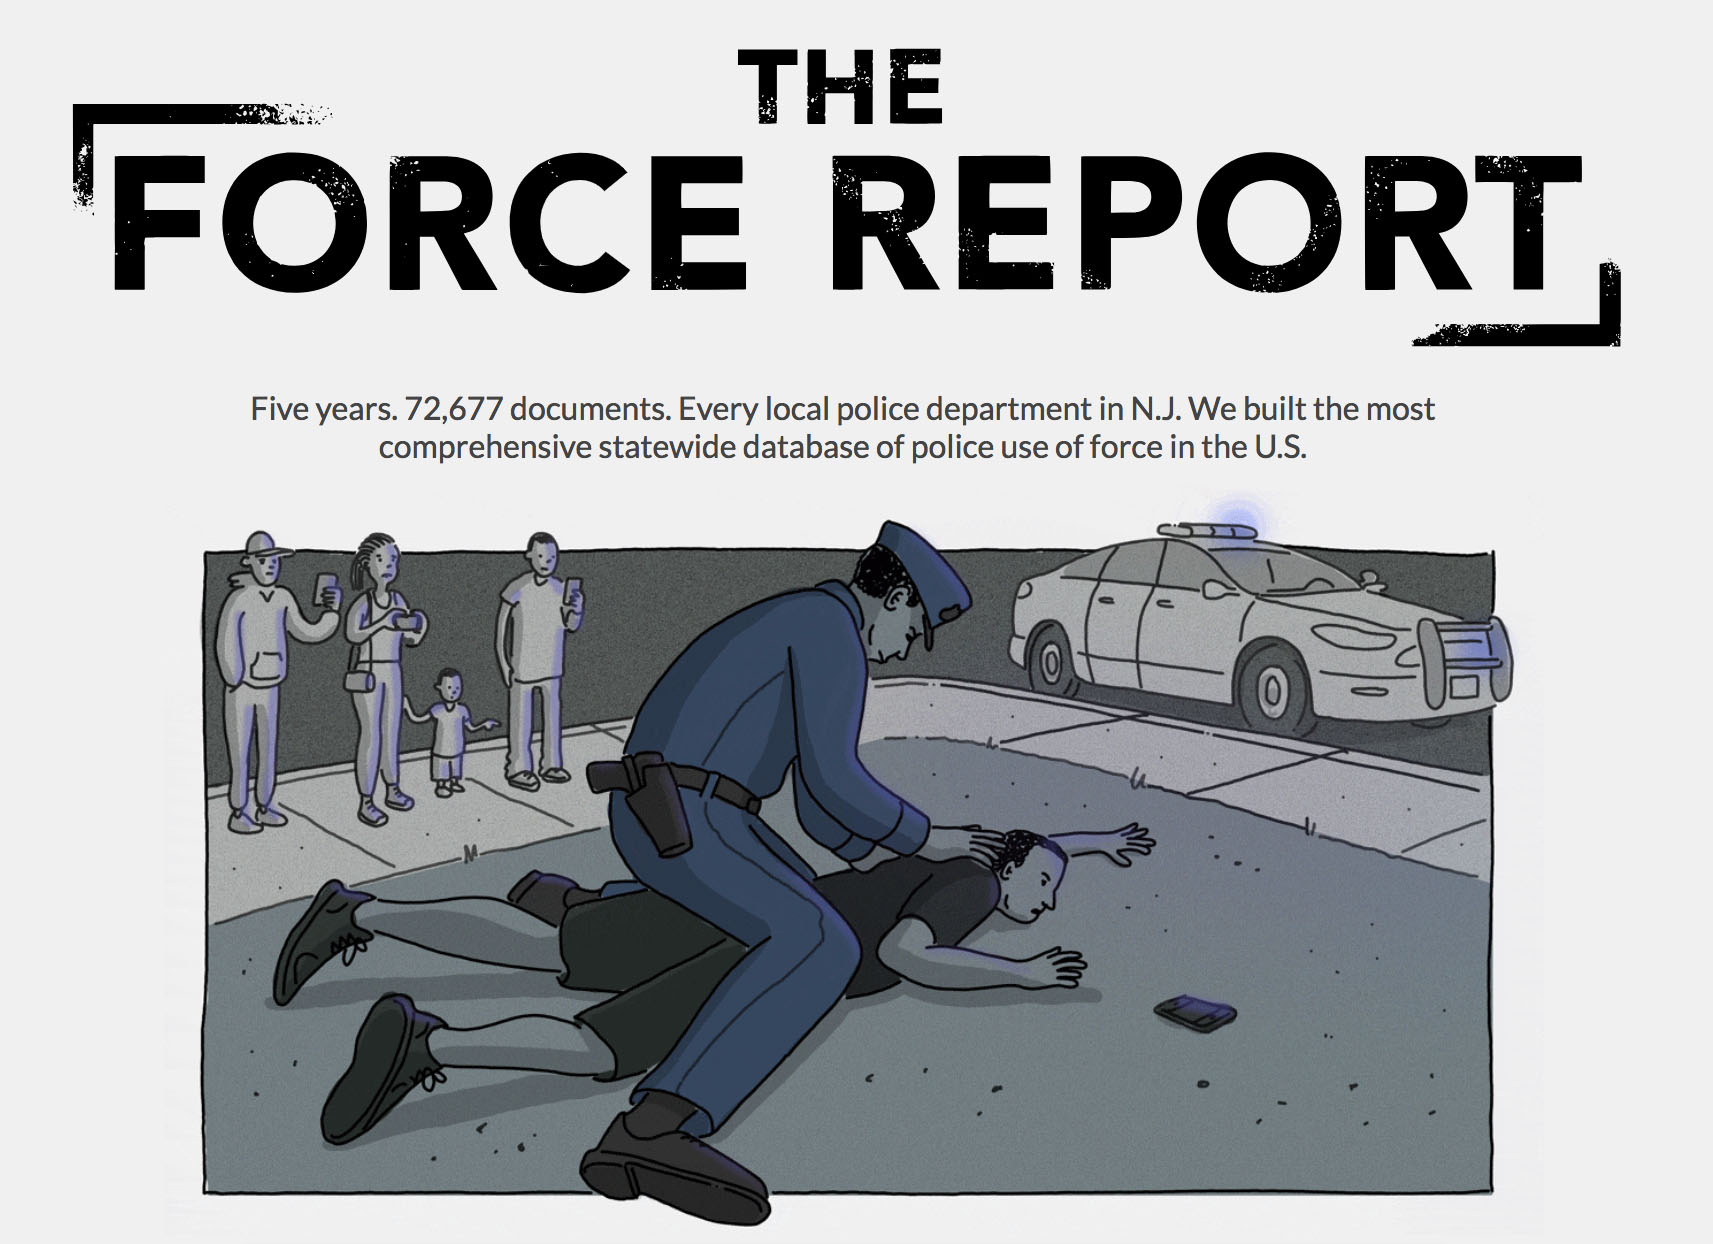 force_report.jpg